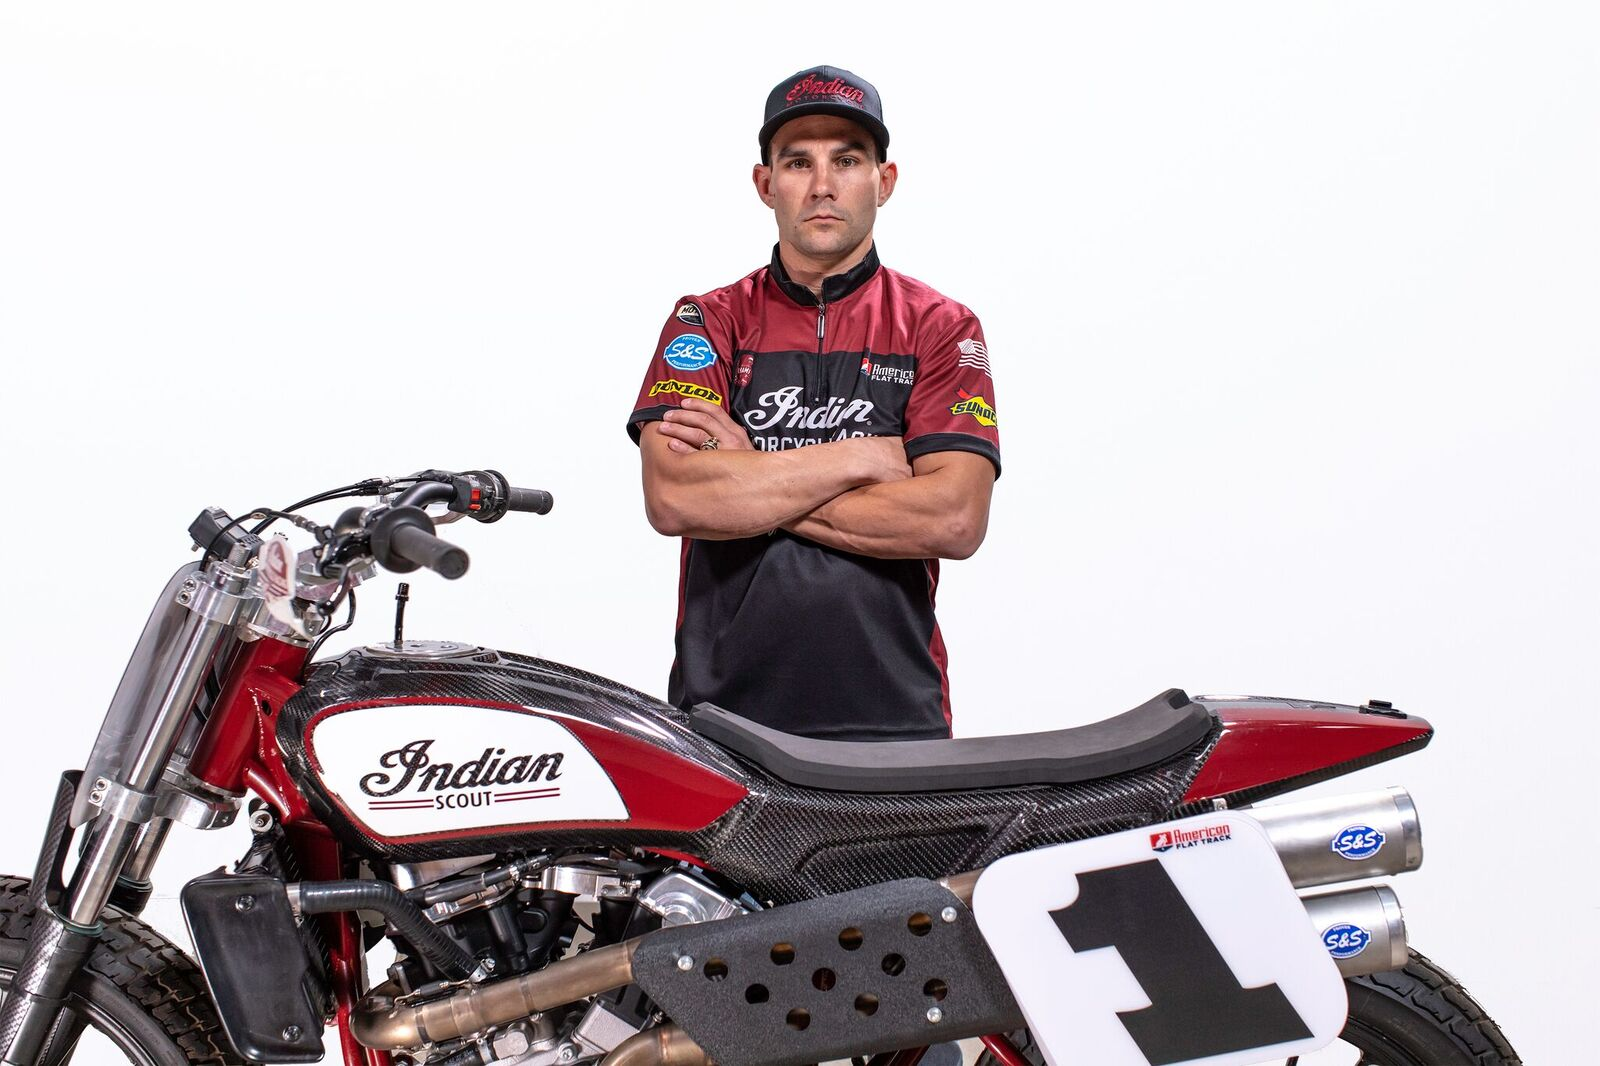 Indian Motorcycle Racing Wrecking Crew - Jared Mees